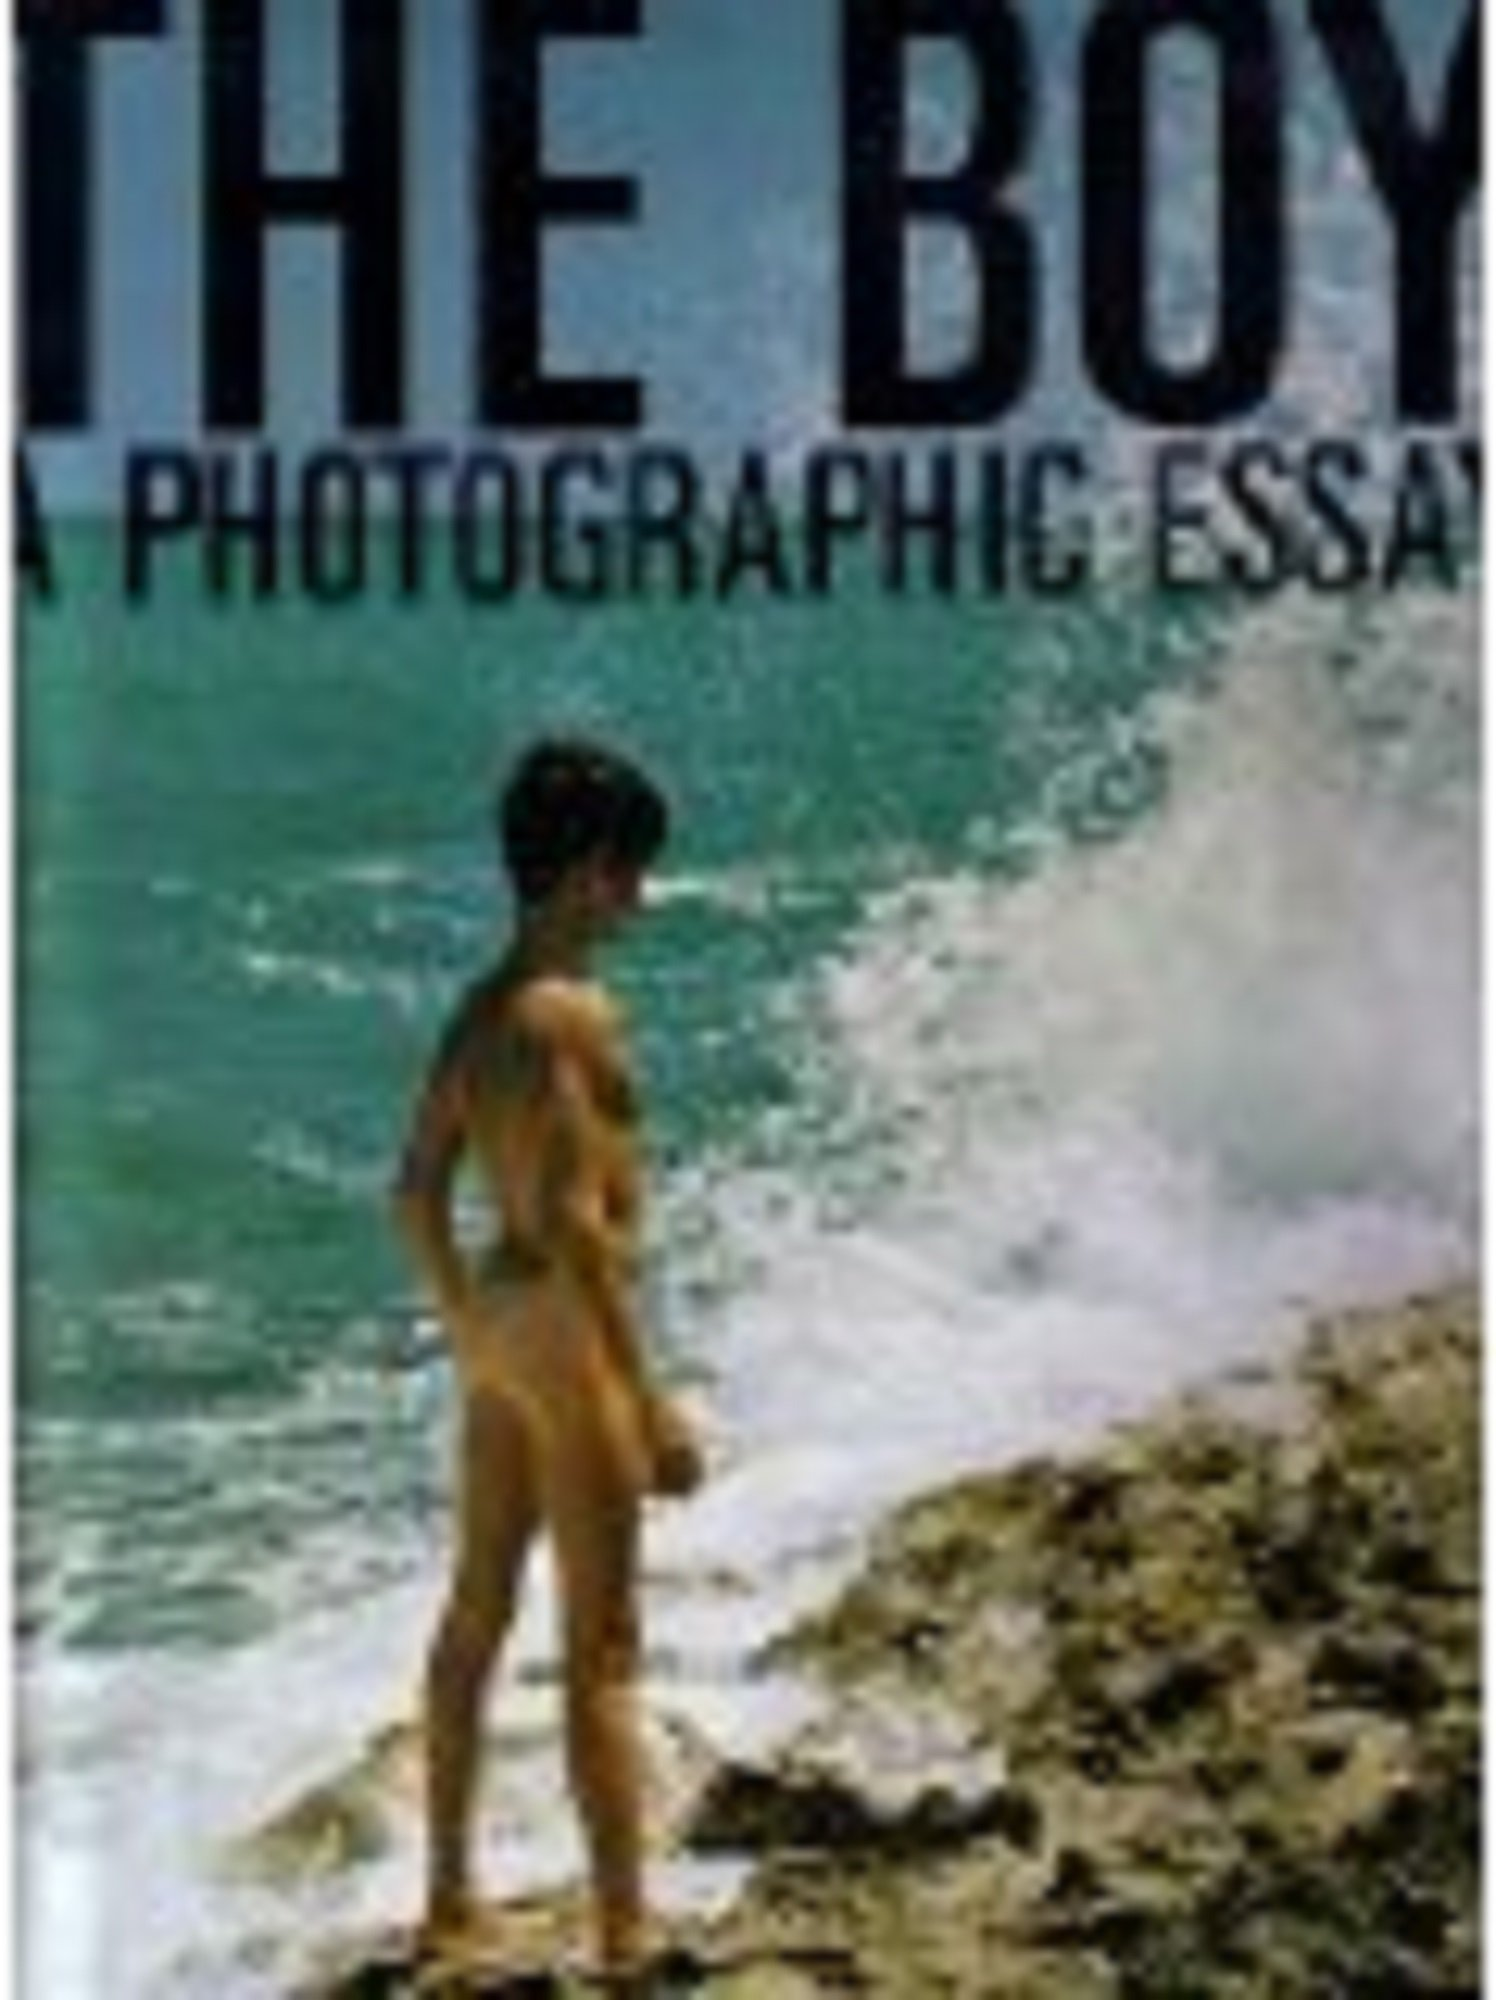 the boy a photographic essay ronald c nelson editors georges the boy a photographic essay ronald c nelson editors georges st martin com books